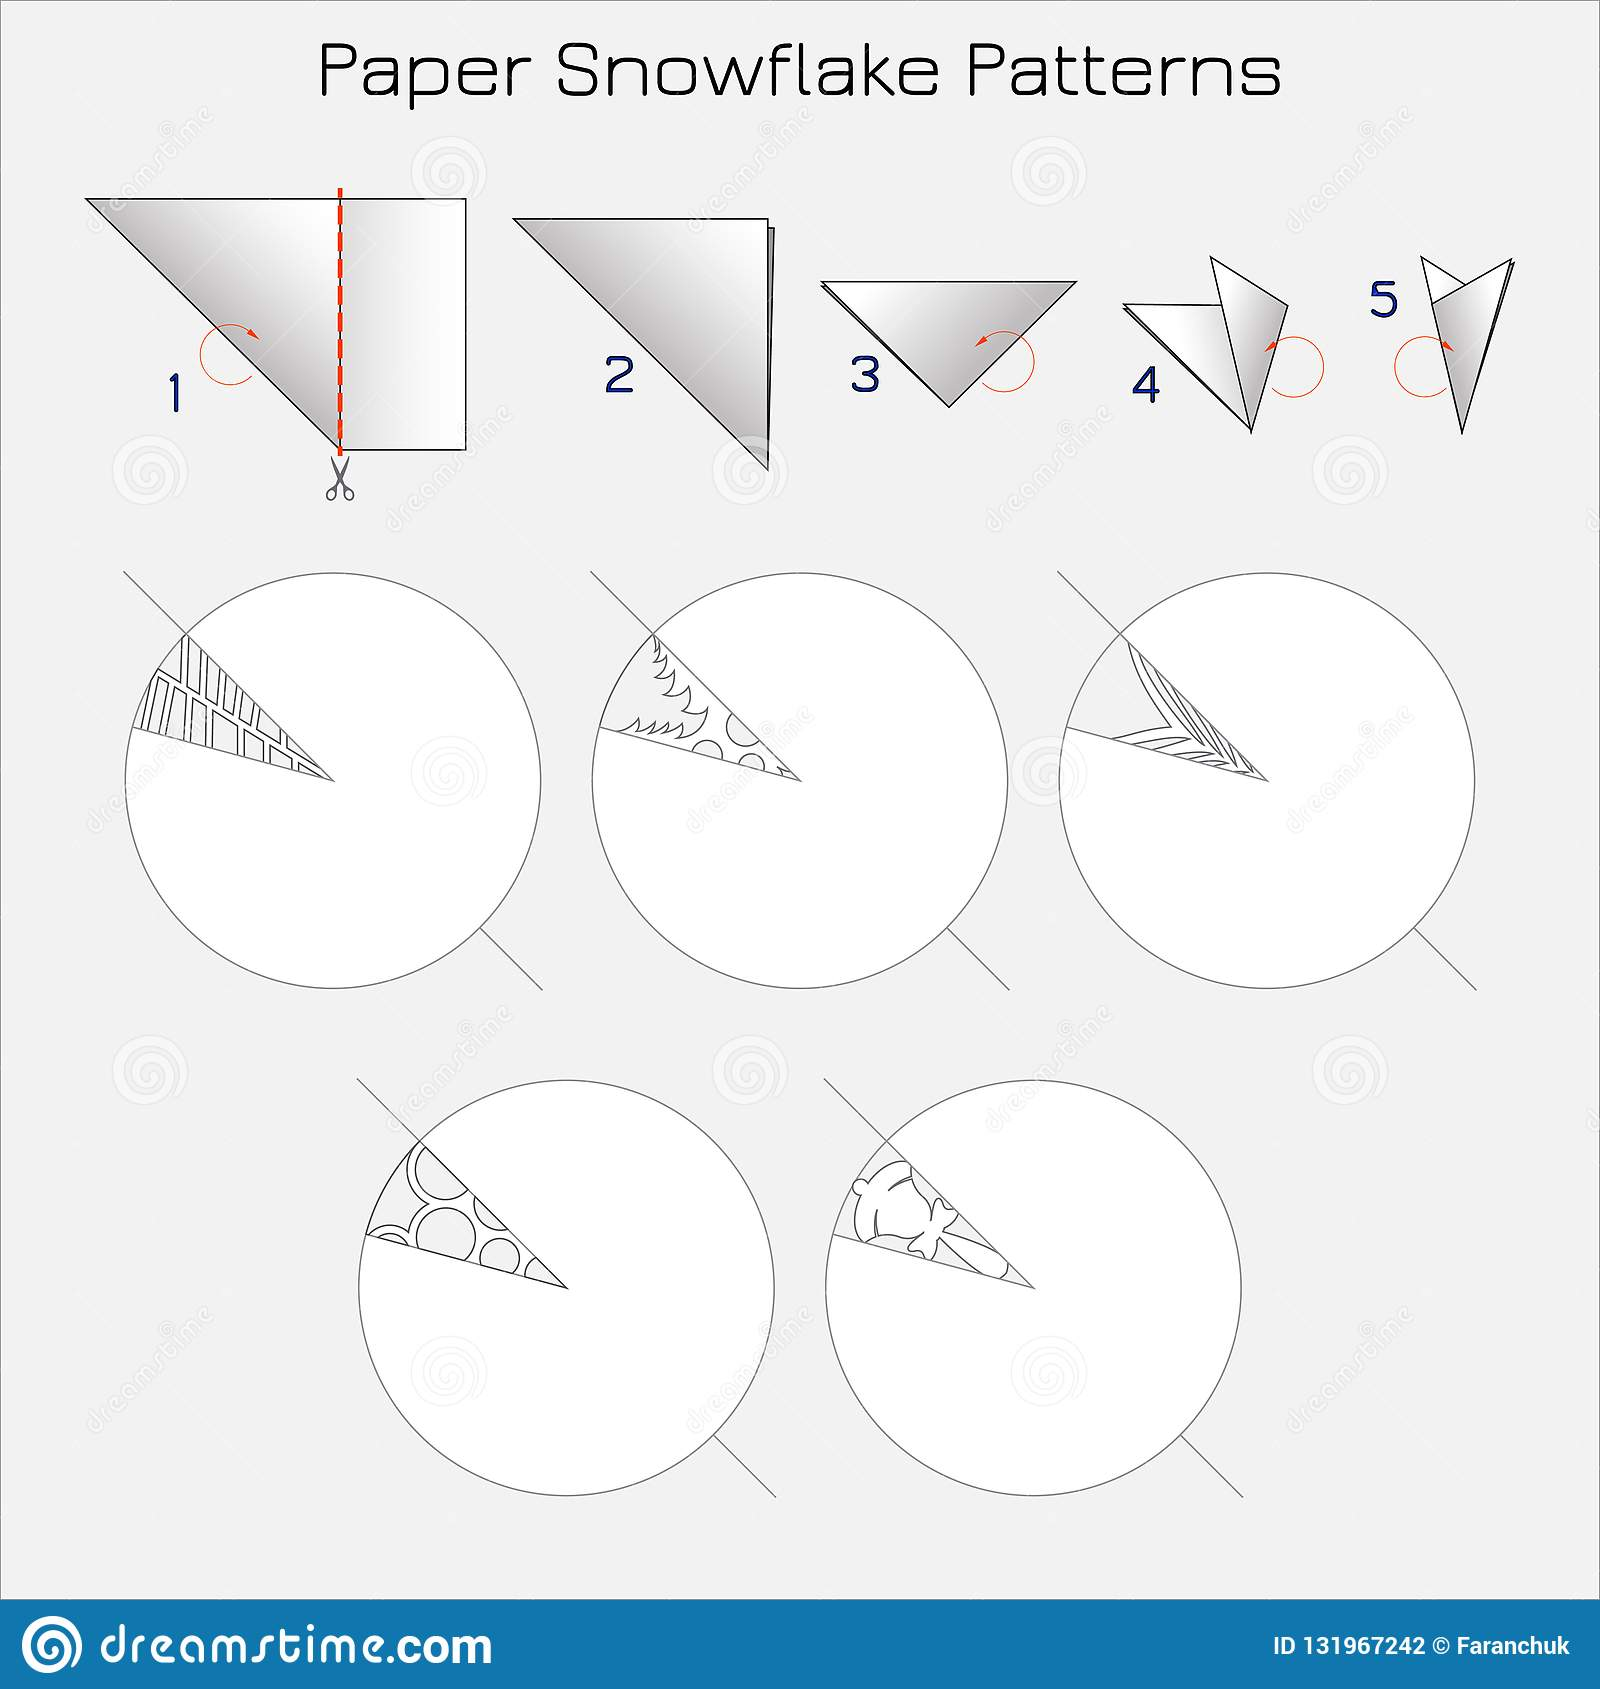 Paper Cut Snowflake Patterns  Step-by-step Instruction For